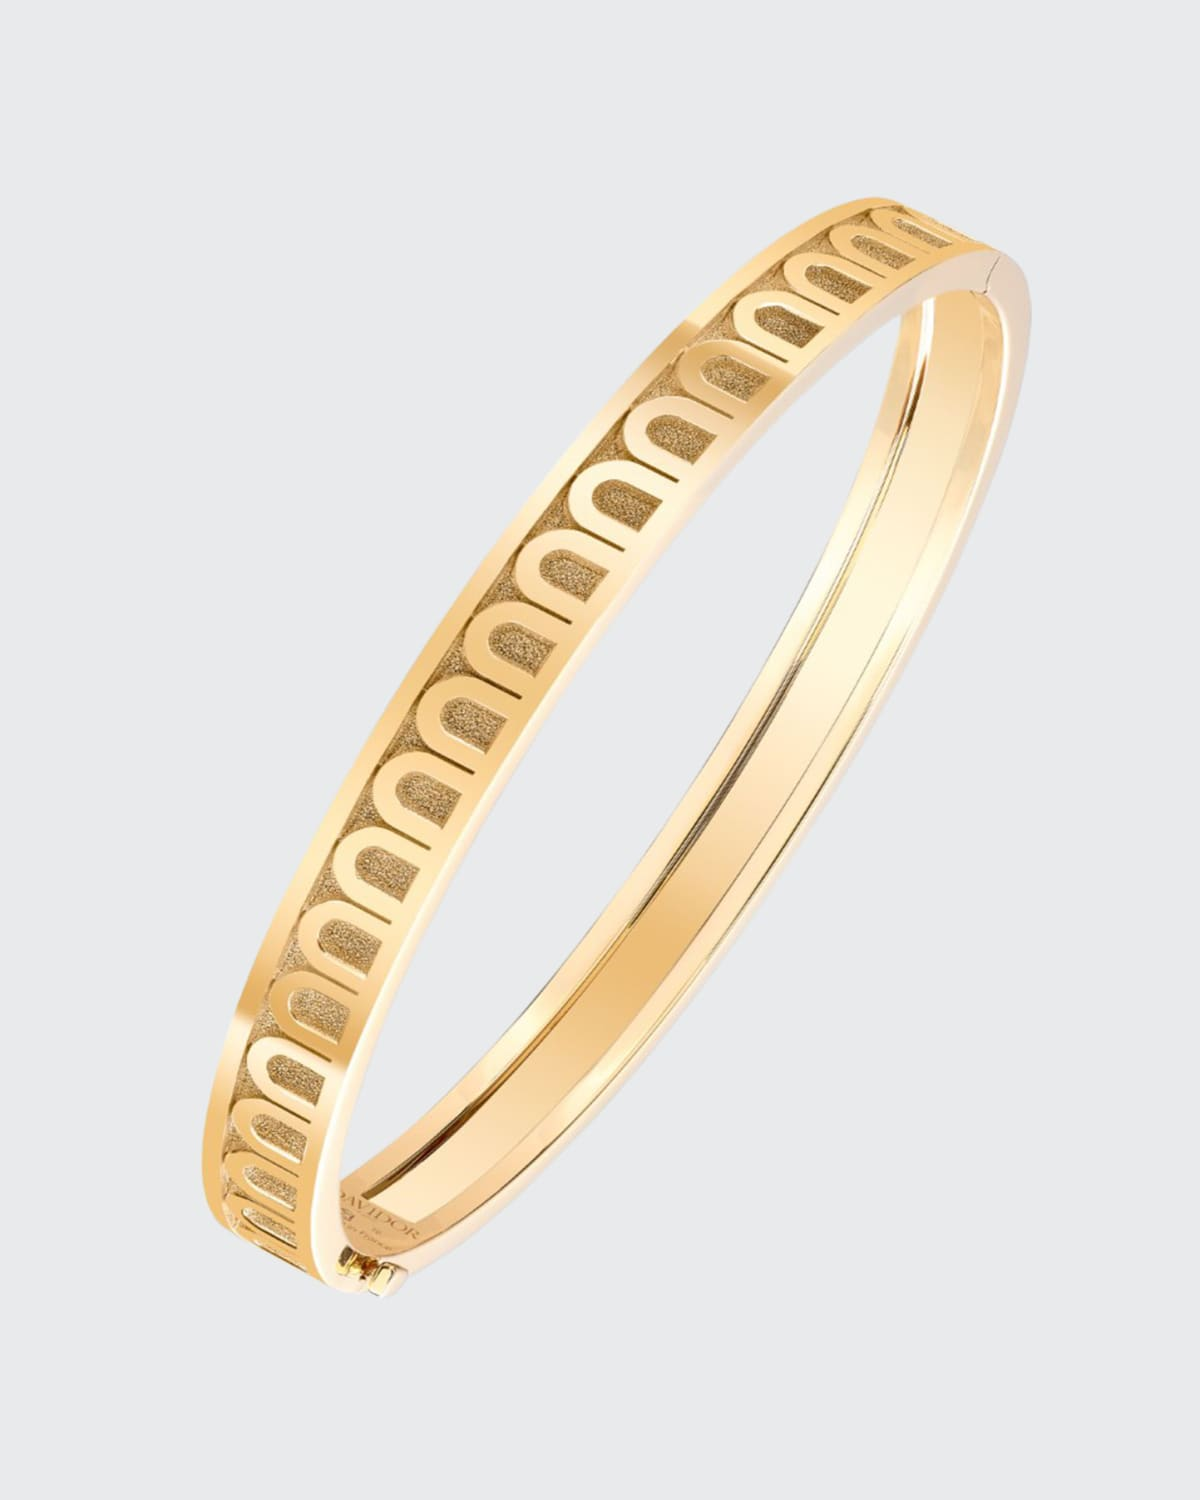 Bangle in 18k Yellow Gold